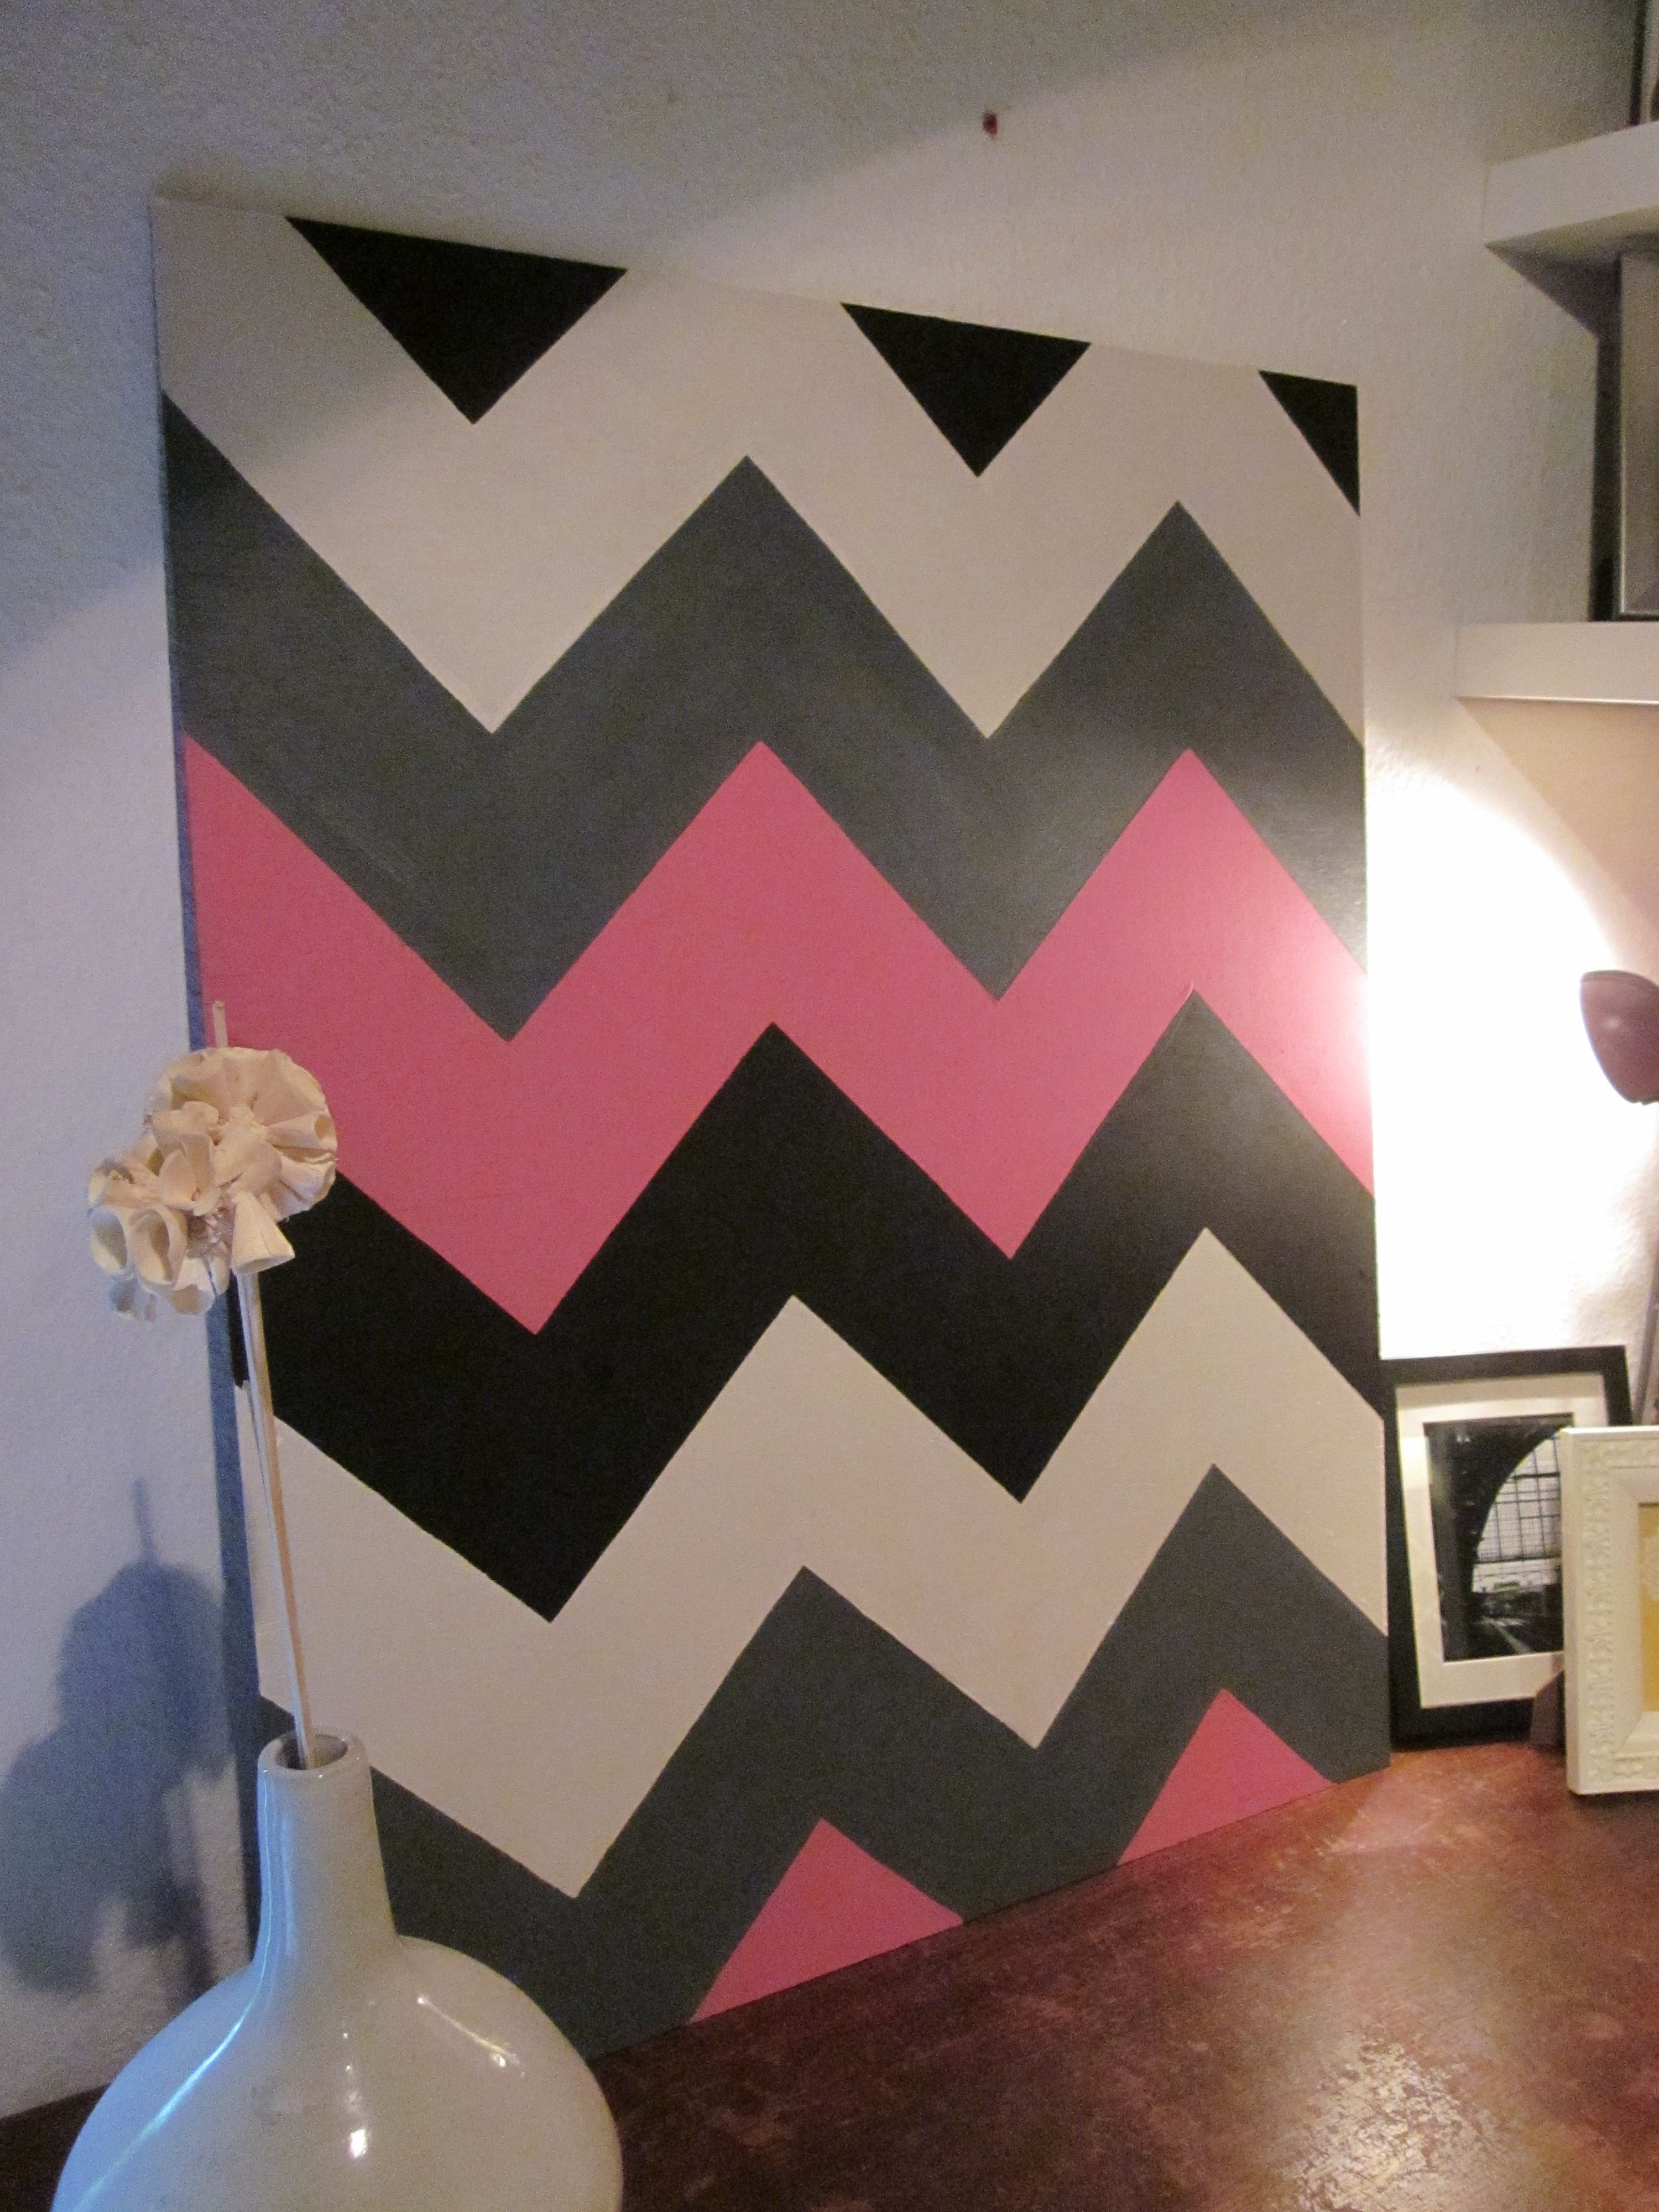 Four Colored Chevron Wall Art | Decorating Ideas | Pinterest | Walls In Chevron Wall Art (View 17 of 20)